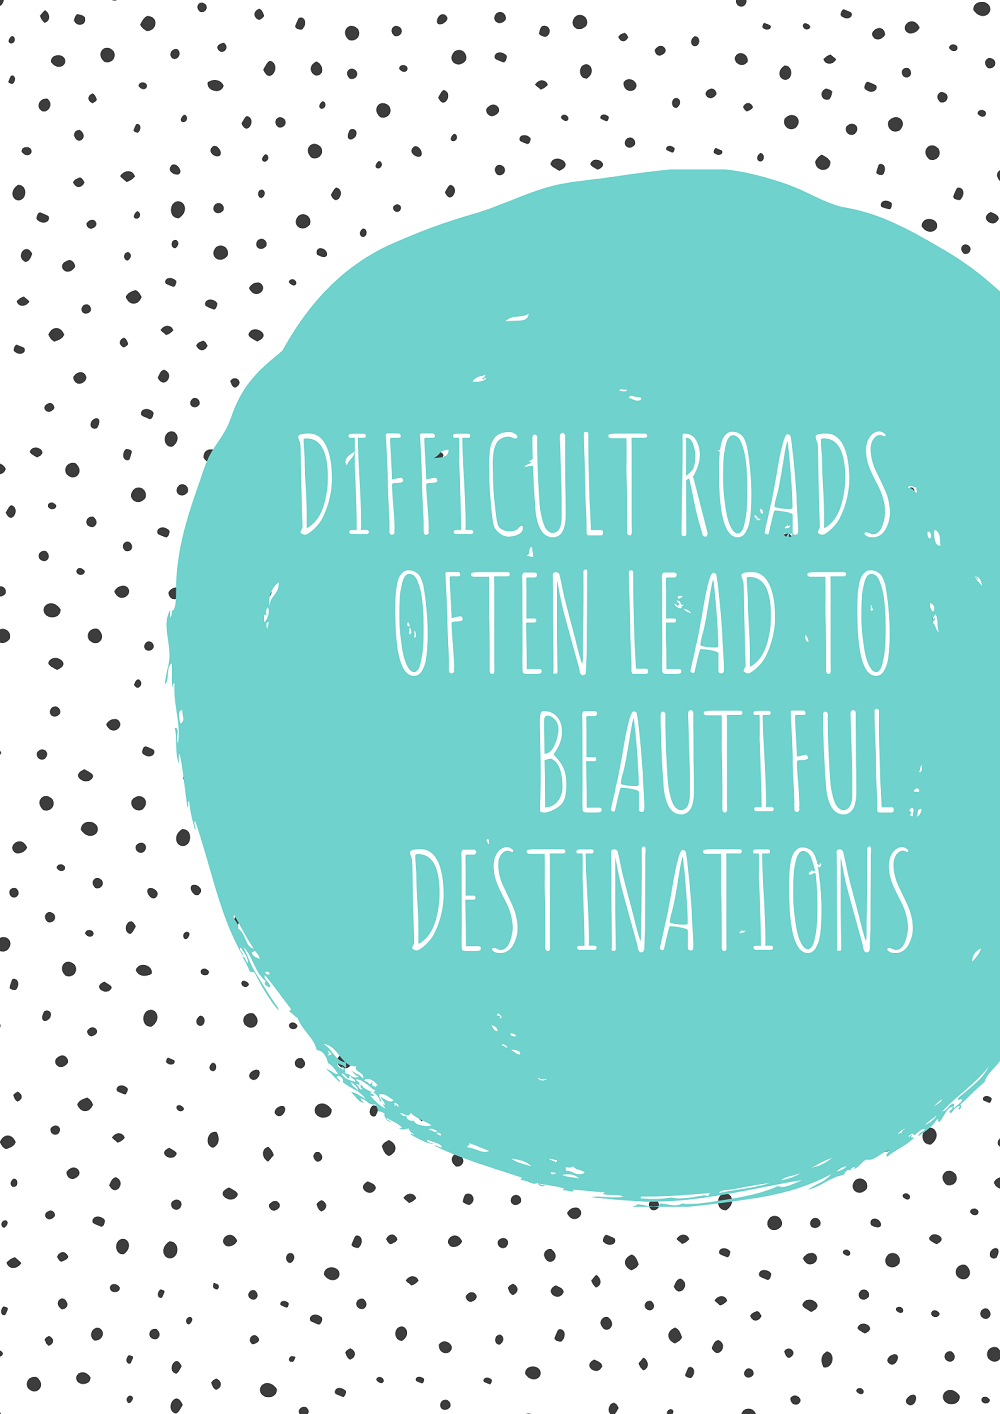 Run Mummy Run: Difficult Roads Often Lead To Beautiful Destinations.